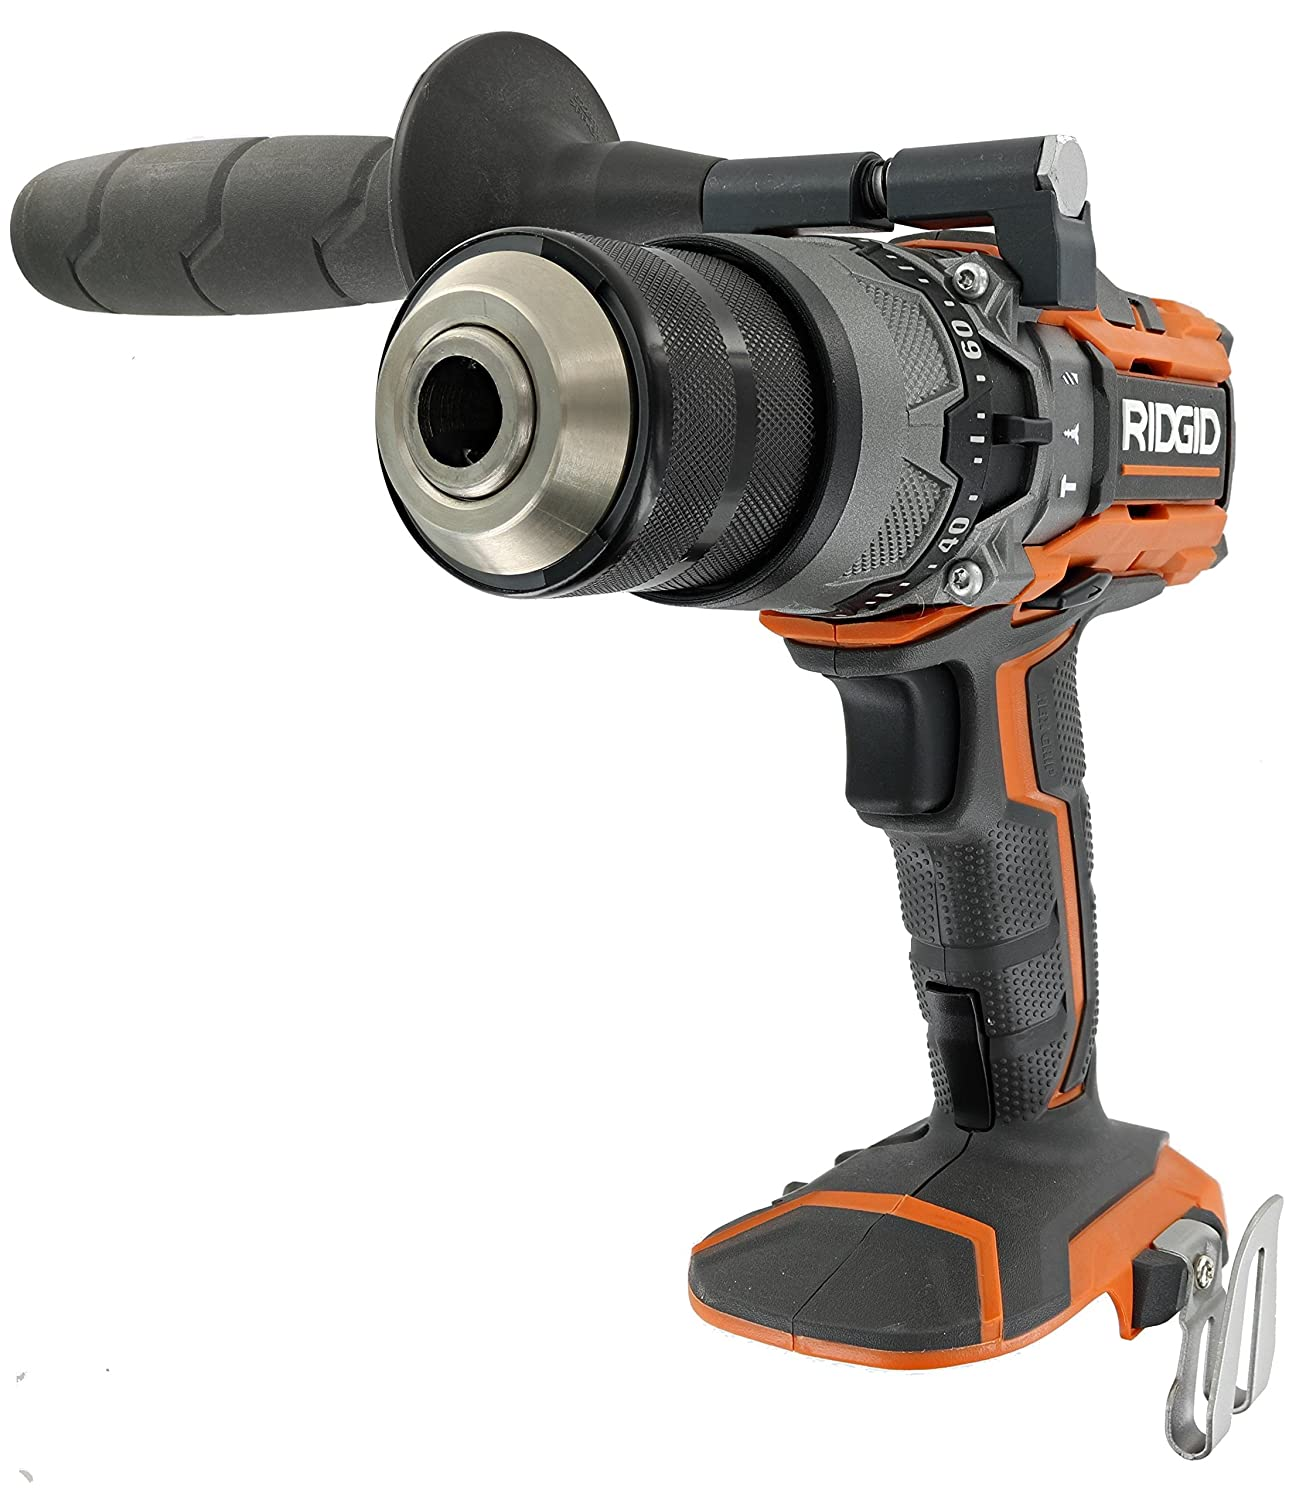 Ridgid R8611503 Gen5X 18V Lithium Ion Cordless 1 2 Inch 780 Inch Pound Hammer Drill with LED Lighting and Textured Handle Battery Not Included, Tool Only Renewed